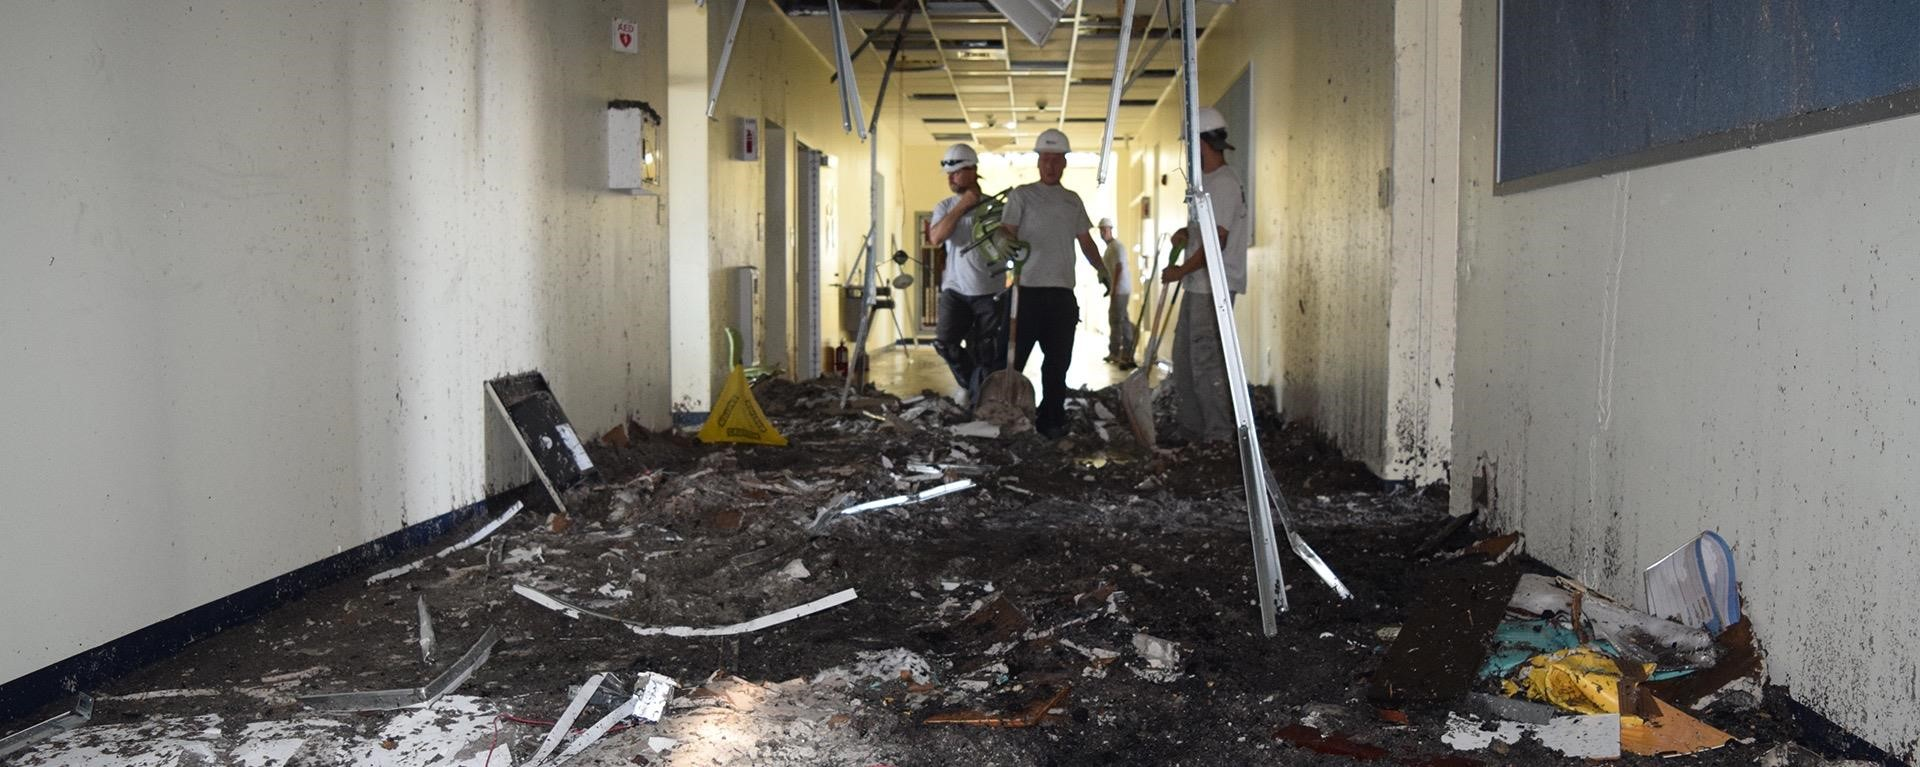 Why Should You Hire a Professional Disaster Restoration Service?